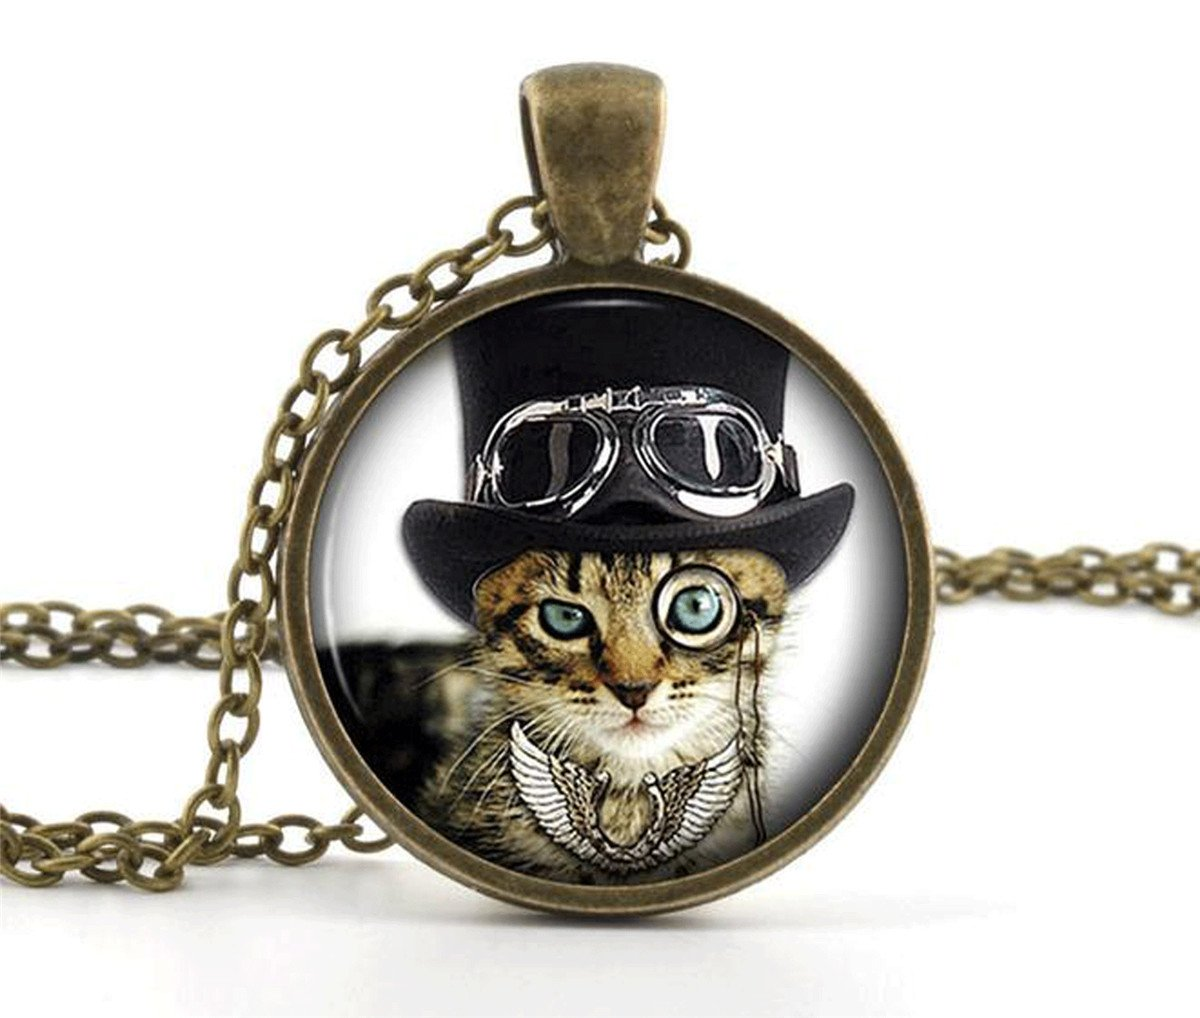 Cool Cat Picture Pendant Necklace - Steampunk Funny Glass Kitten Kitty Jewellery 3